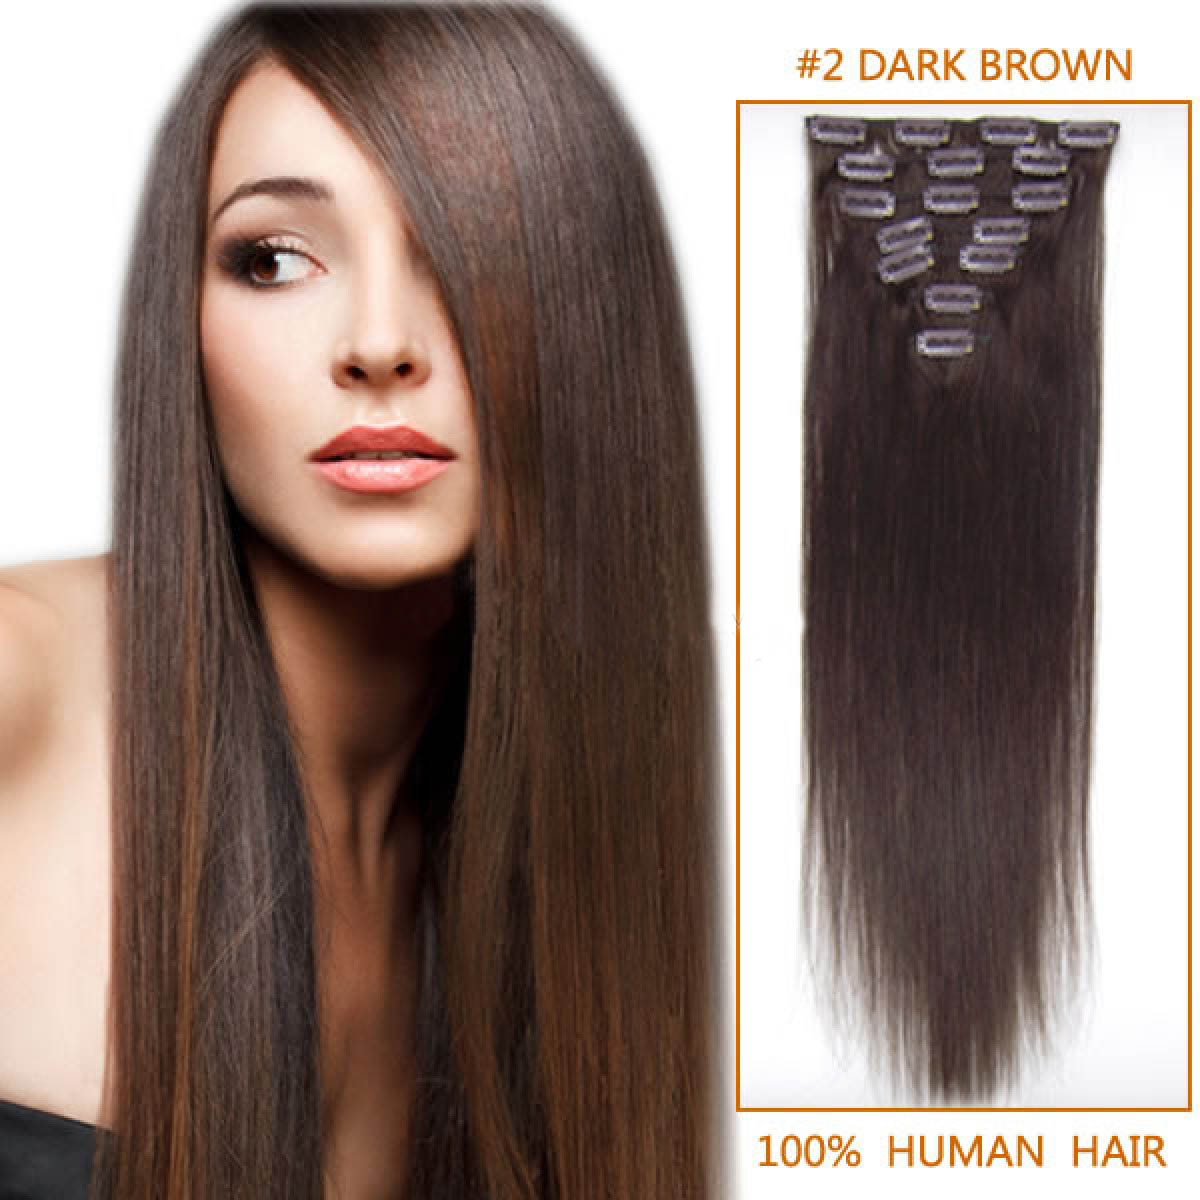 Inch 2 dark brown clip in human hair extensions 10pcs 24 inch 2 dark brown clip in human hair extensions 10pcs pmusecretfo Image collections